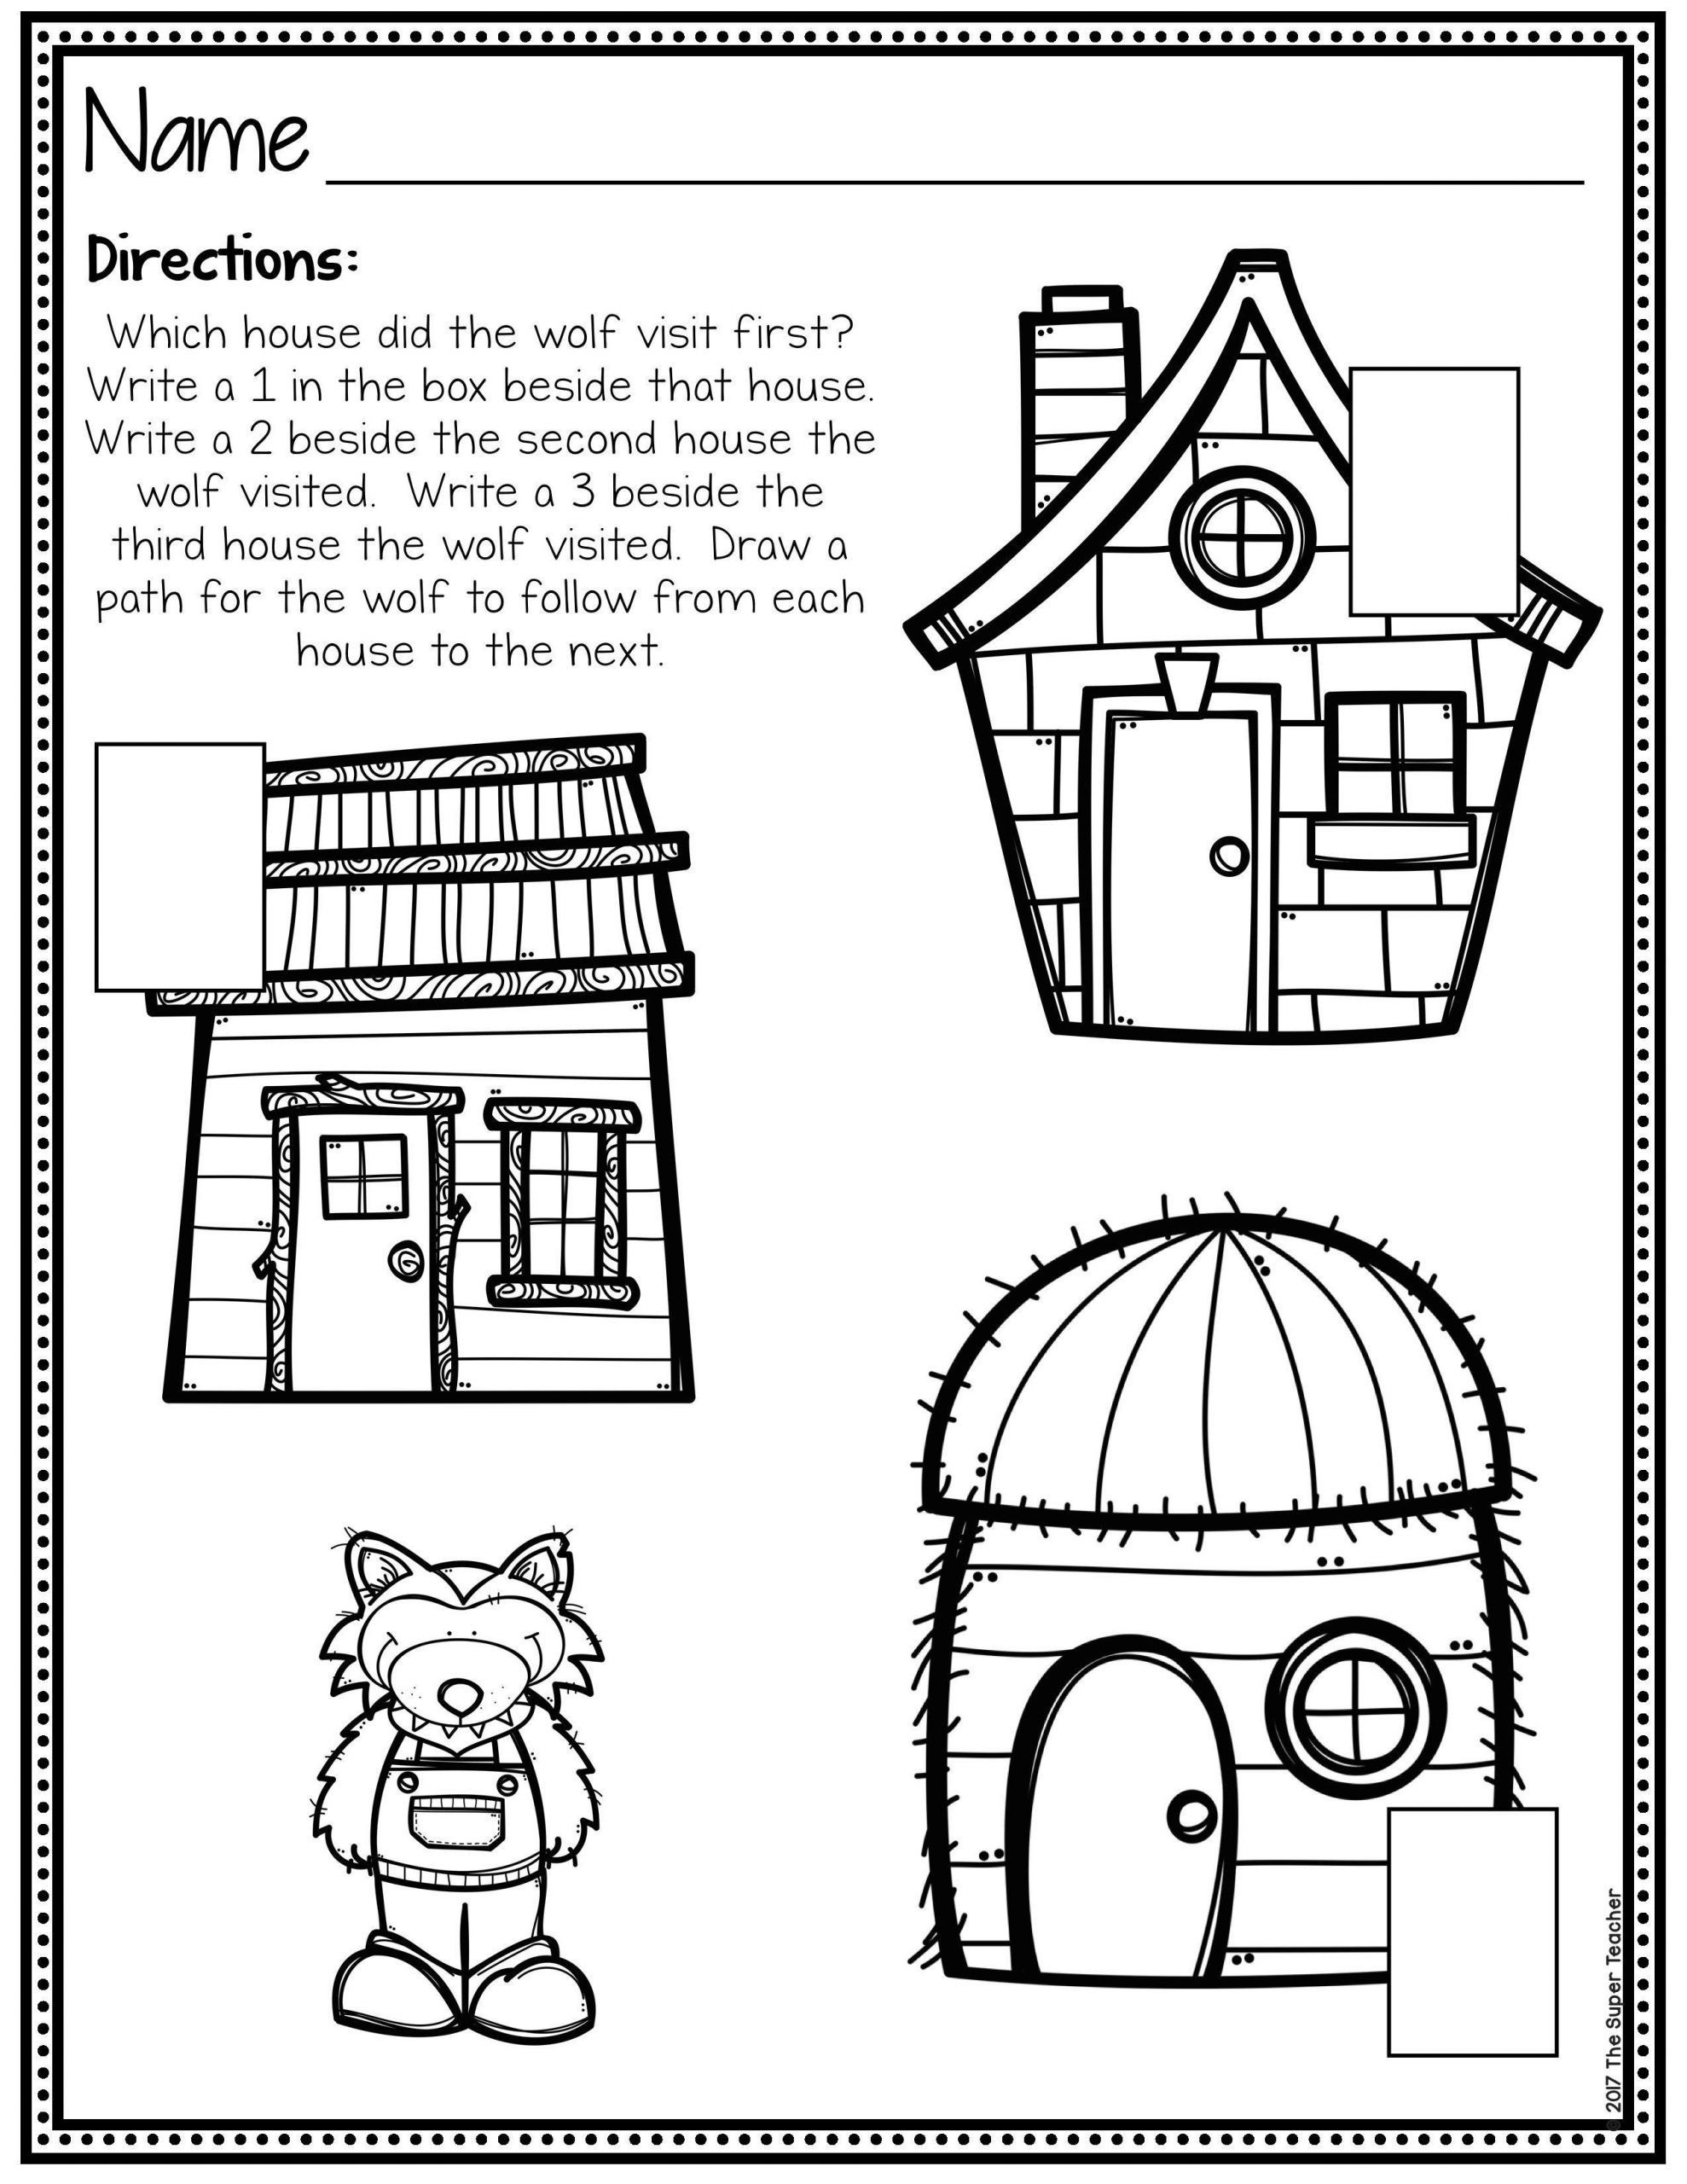 5 Free Math Worksheets Third Grade 3 Subtraction Subtract Whole Thousands Kids Worksheet Prac Three Little Pigs Character Worksheets Three Little Pigs Story [ 2560 x 1978 Pixel ]